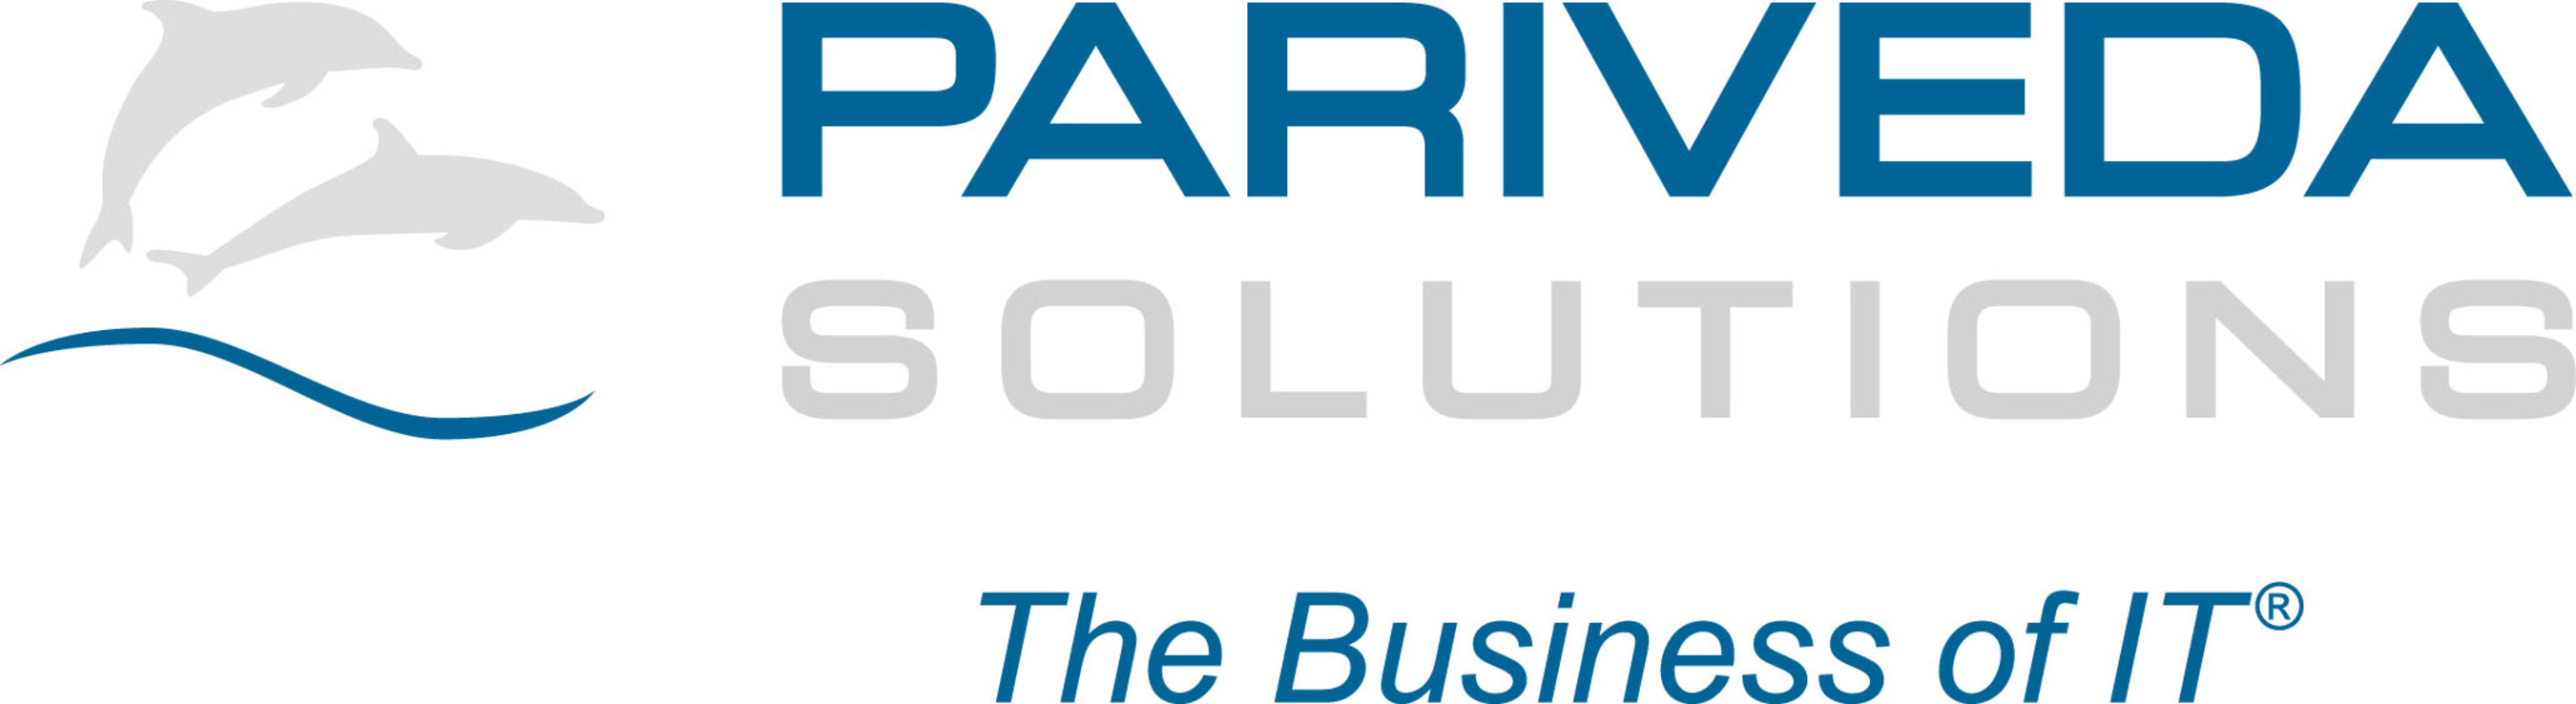 Pariveda Solutions Achieves Amazon Web Services Mobile Competency Status